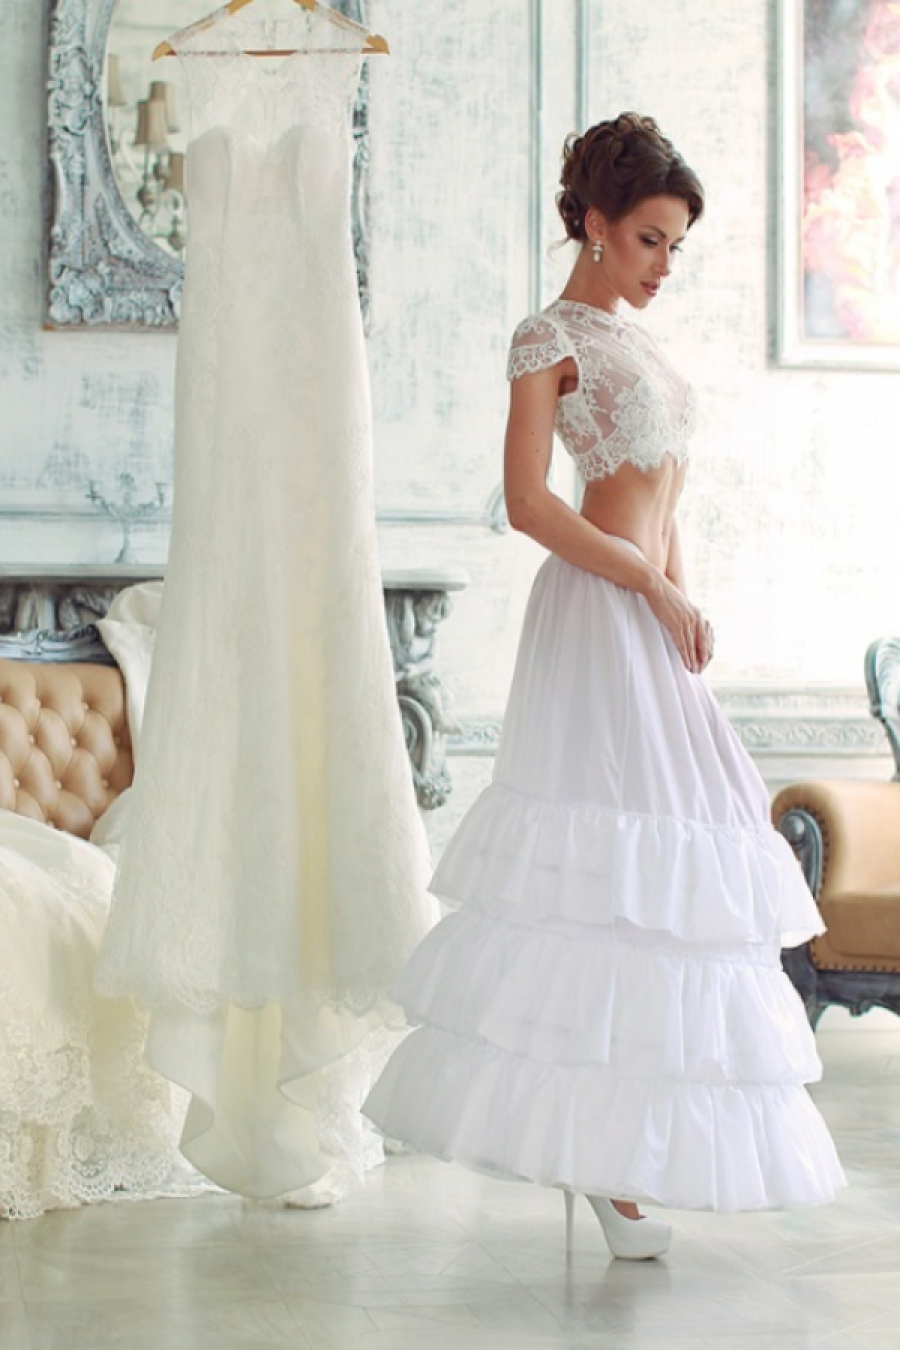 Wedding Dress Styles Proposed by Wedding Dress Designers